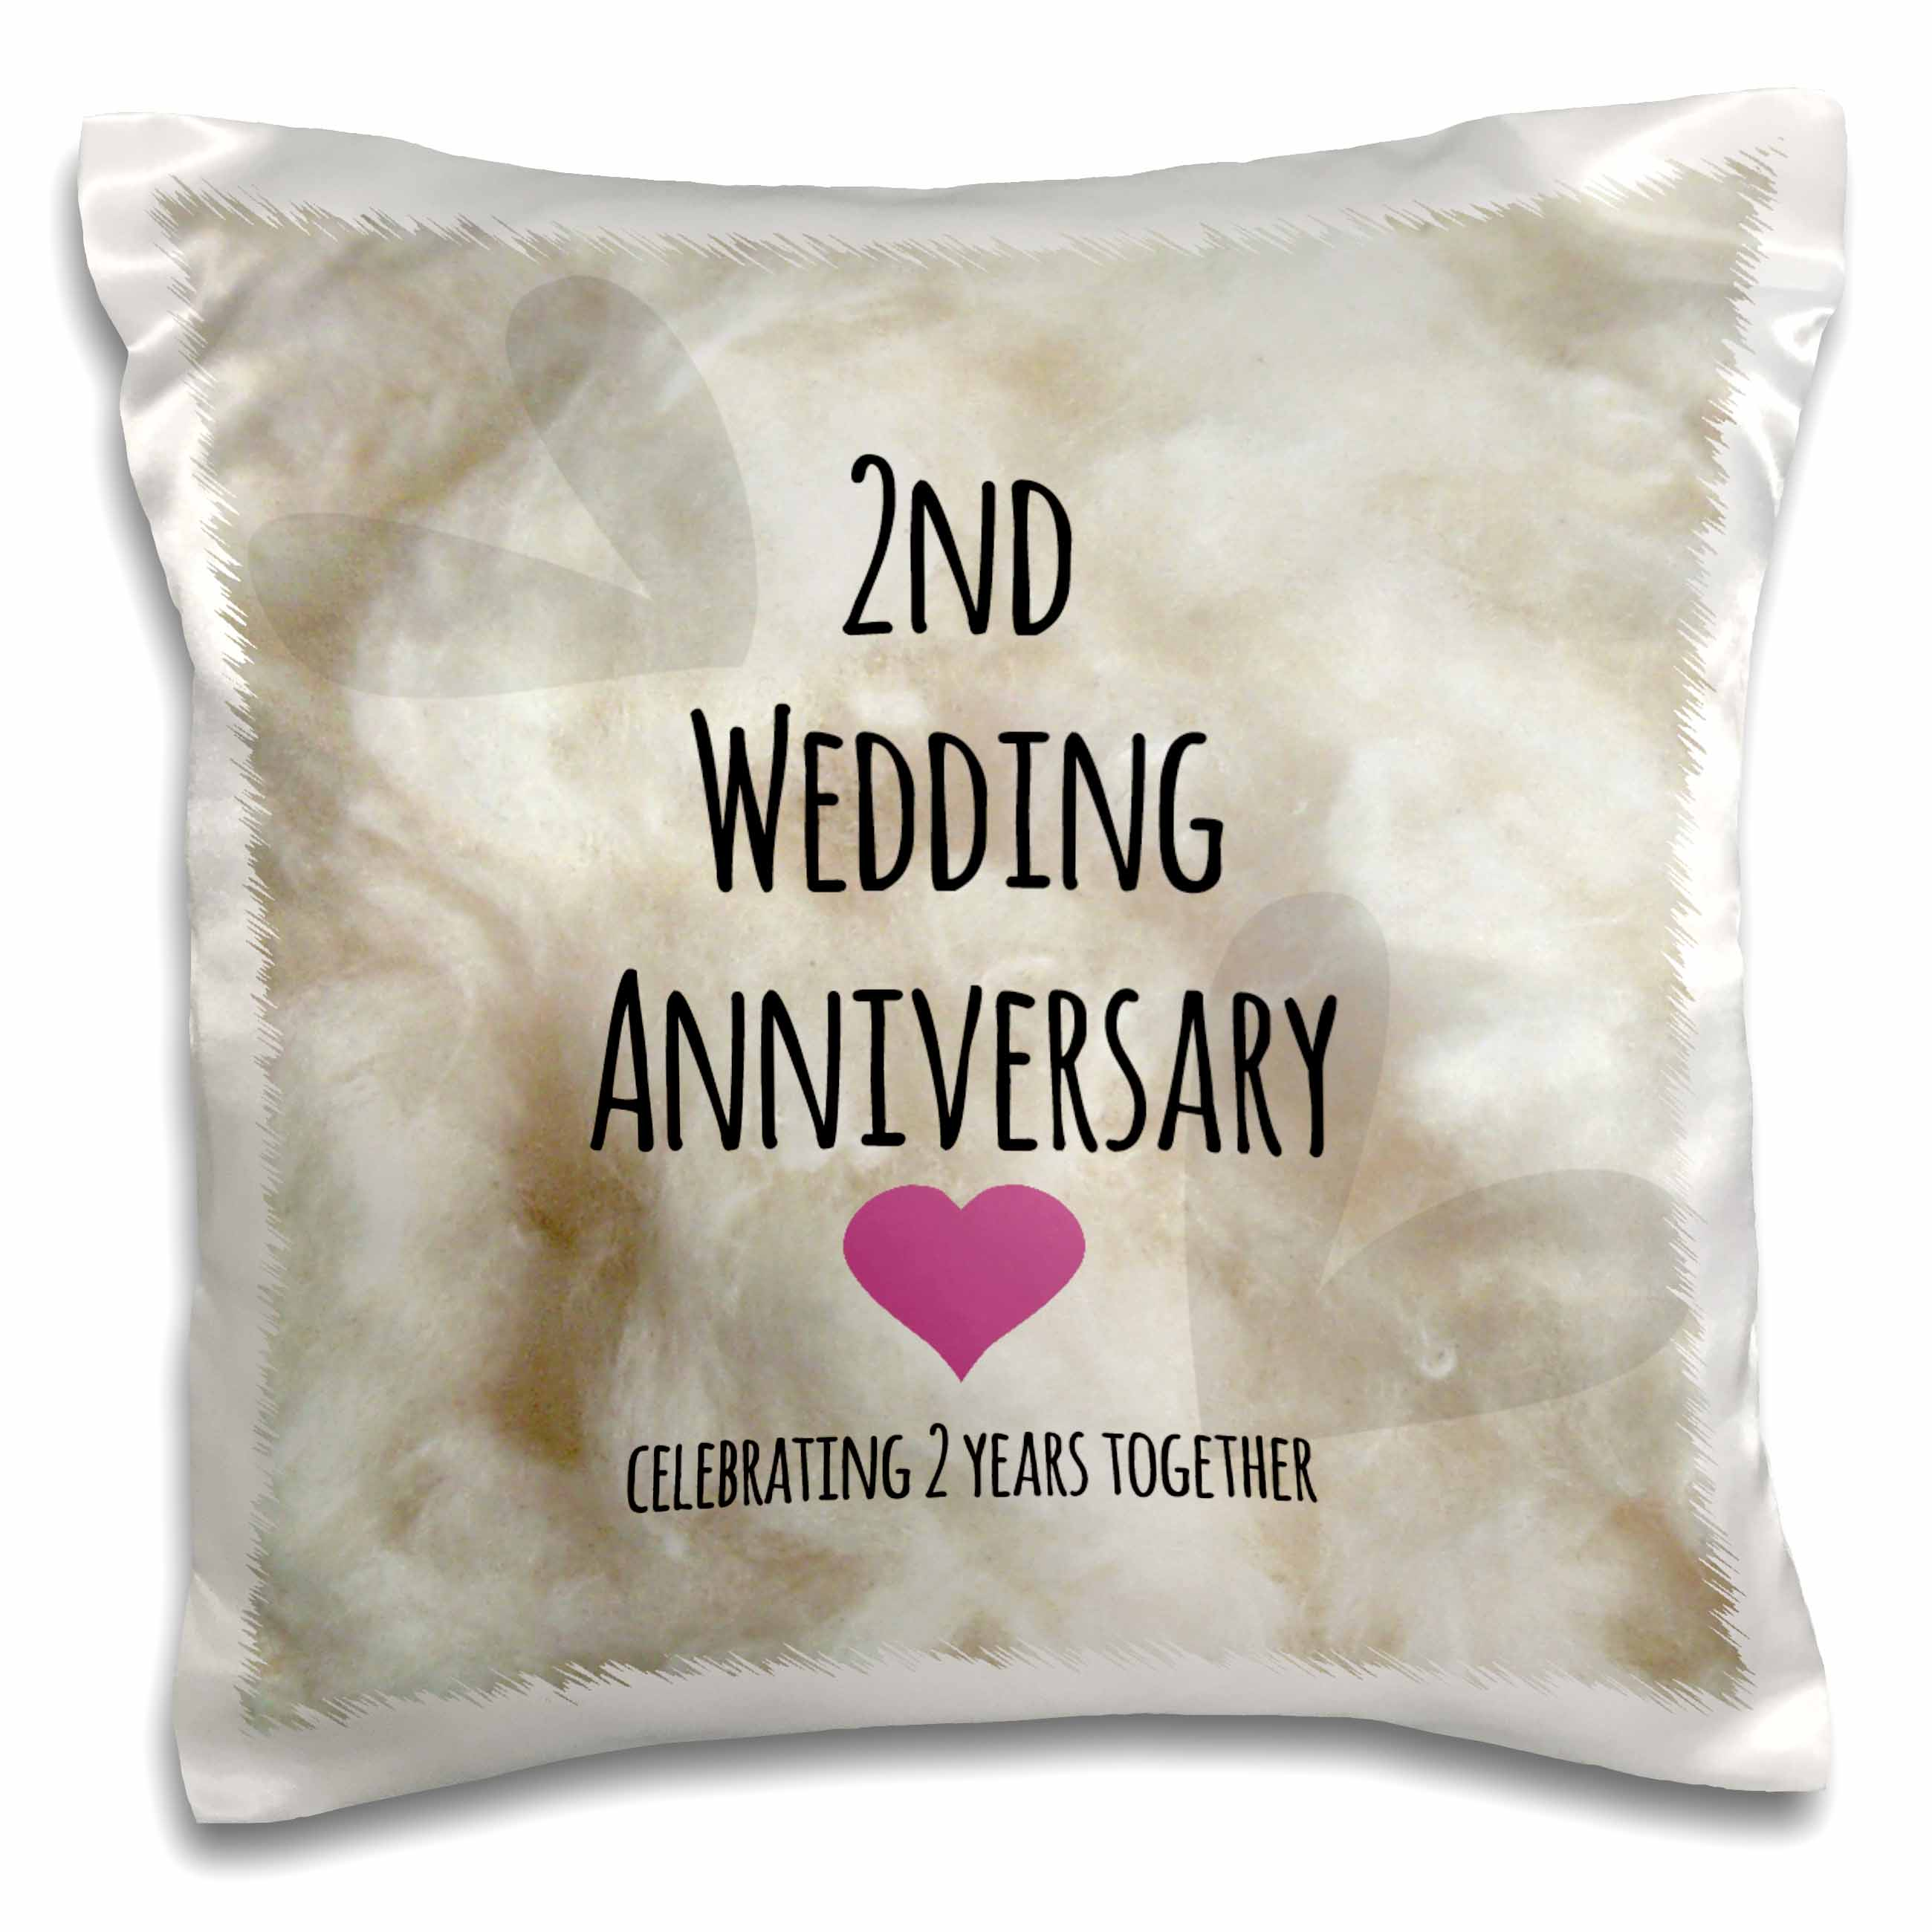 2 Year Wedding Anniversary Gift.3drose 2nd Wedding Anniversary Gift Cotton Celebrating 2 Years Together Second Anniversaries Two Yrs Pillow Case 16 By 16 Inch